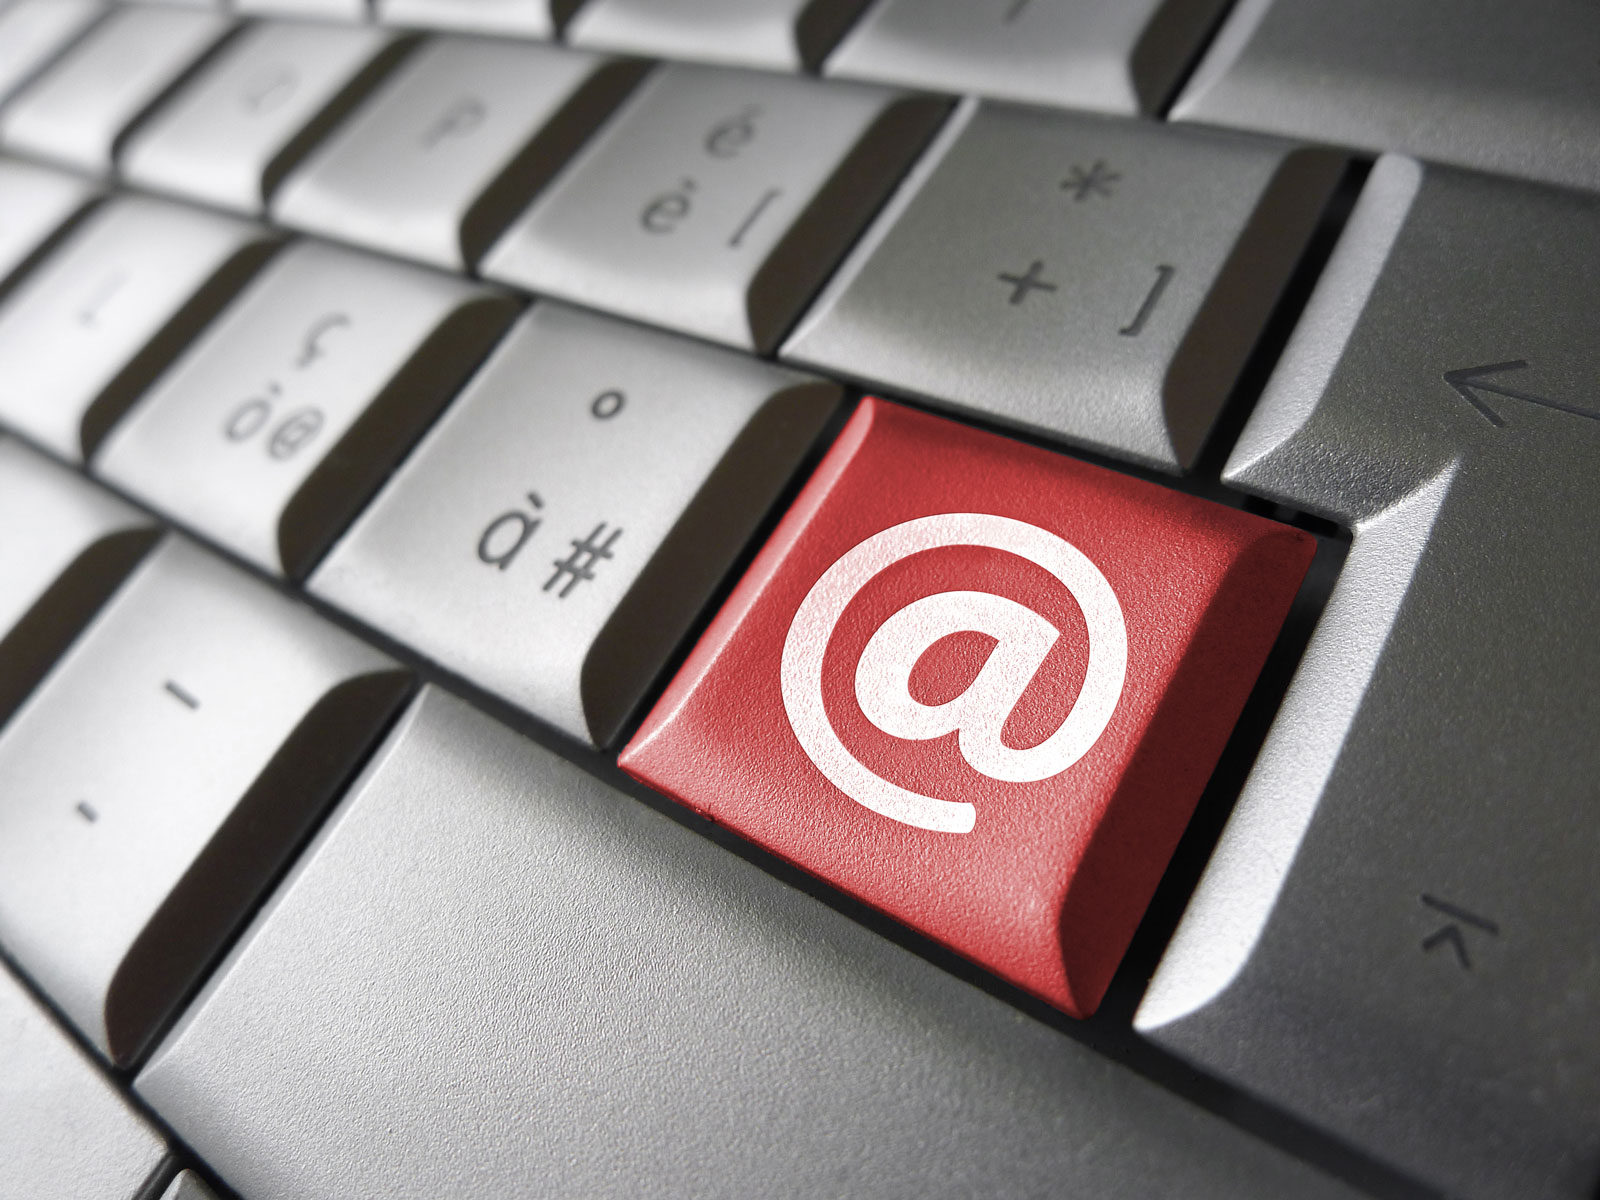 Keyboard | Email Marketing Automation: Get More Results In Less Time